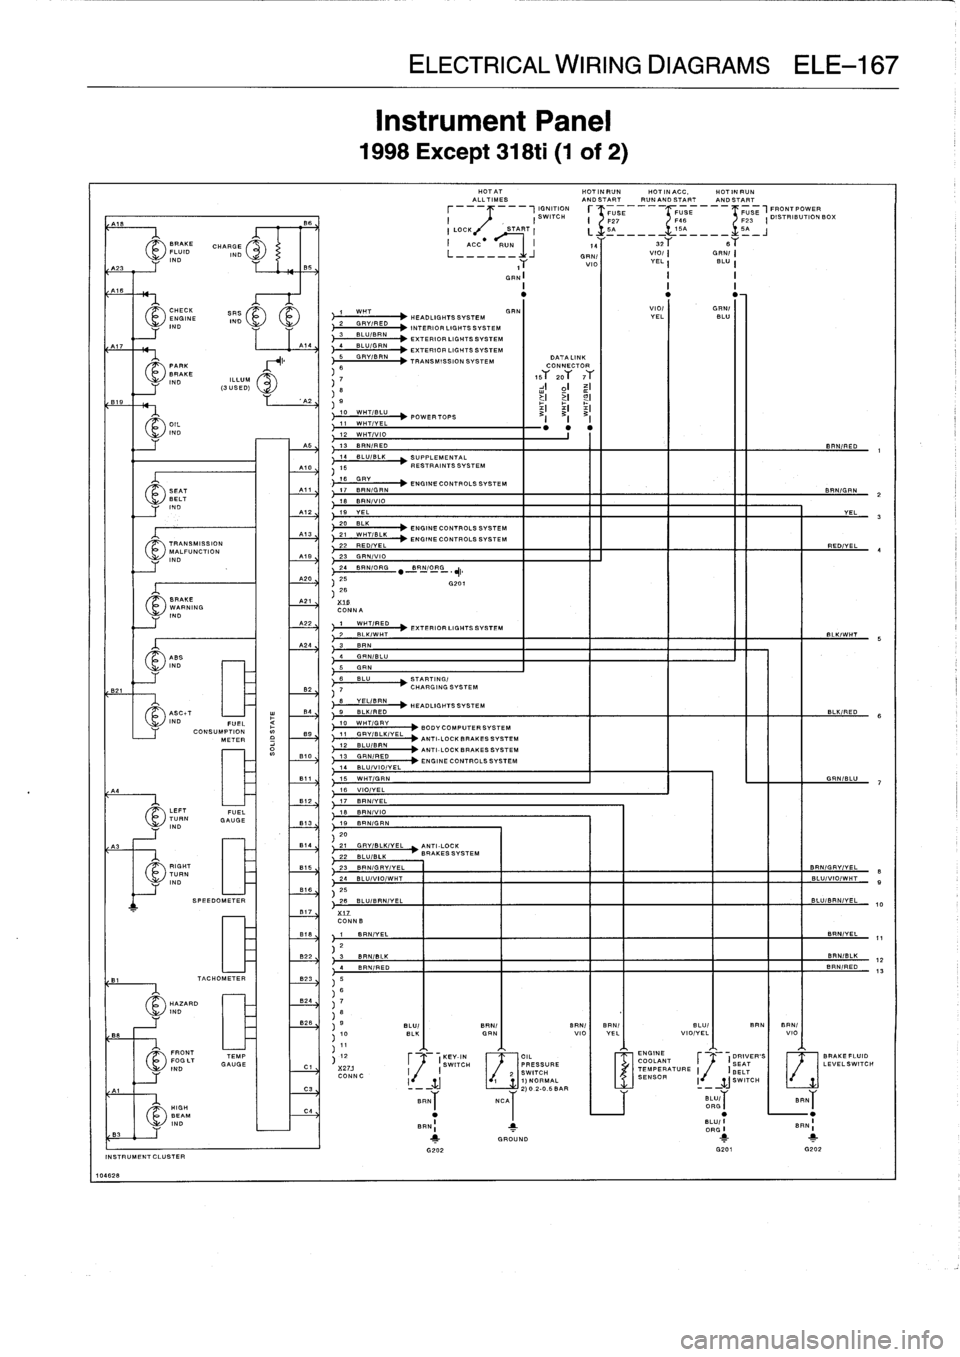 bmw e36 instrument panel wiring diagram bmw image bmw m3 1992 e36 workshop manual on bmw e36 instrument panel wiring diagram